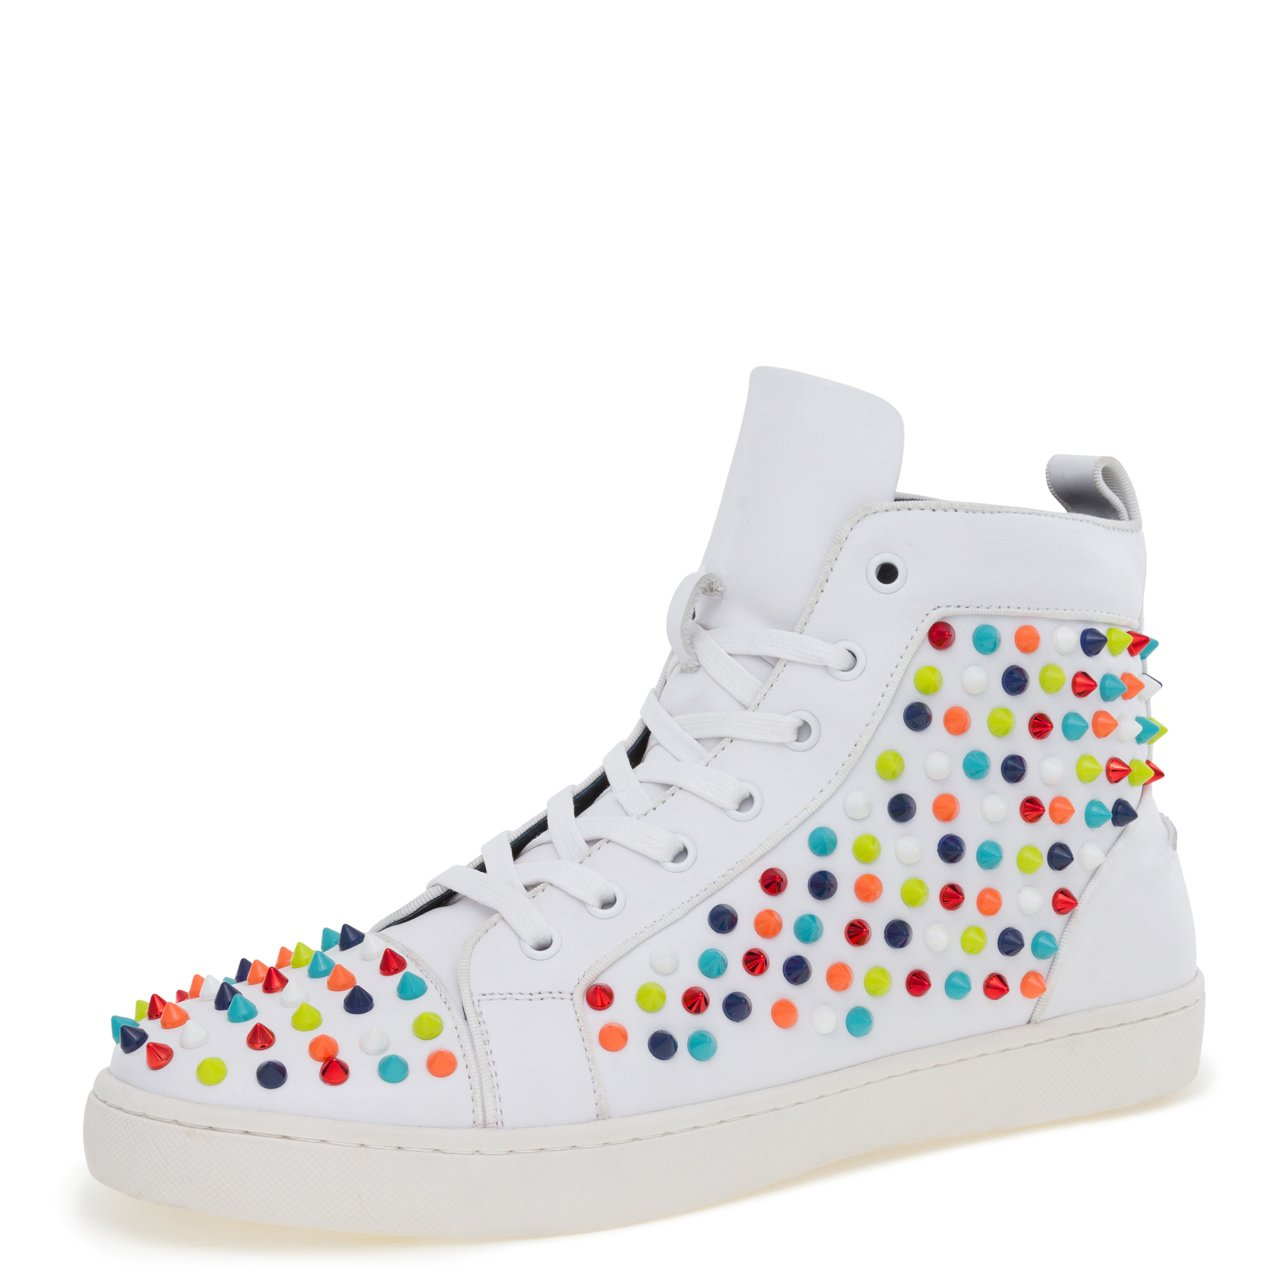 J75 by Jump Men's Rarity Round Toe Spike Detail Lace-up High-Top Sneaker White Multi 8 D US Men